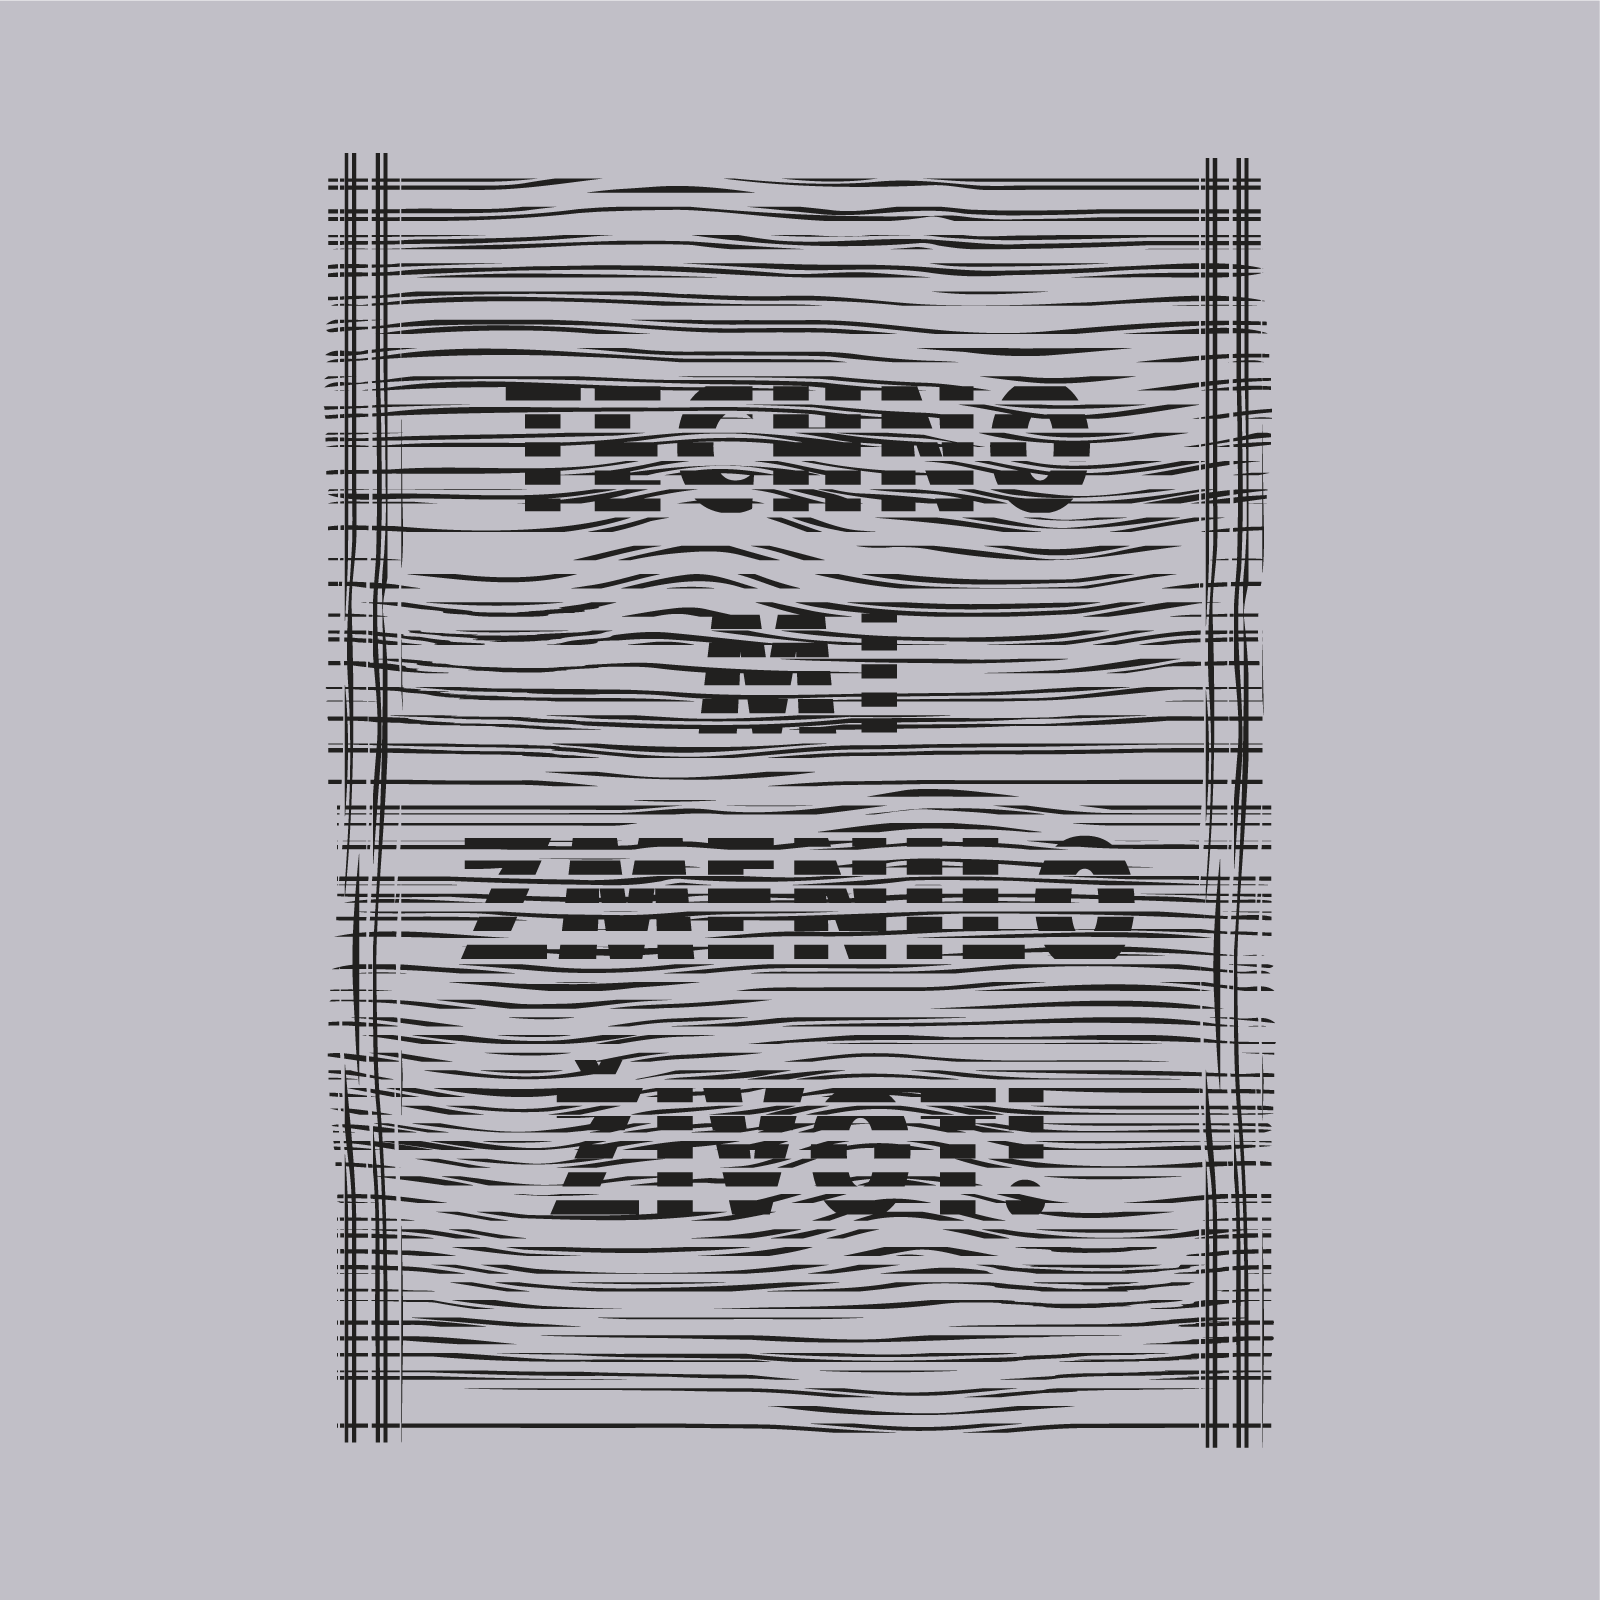 Techno (GIRL)